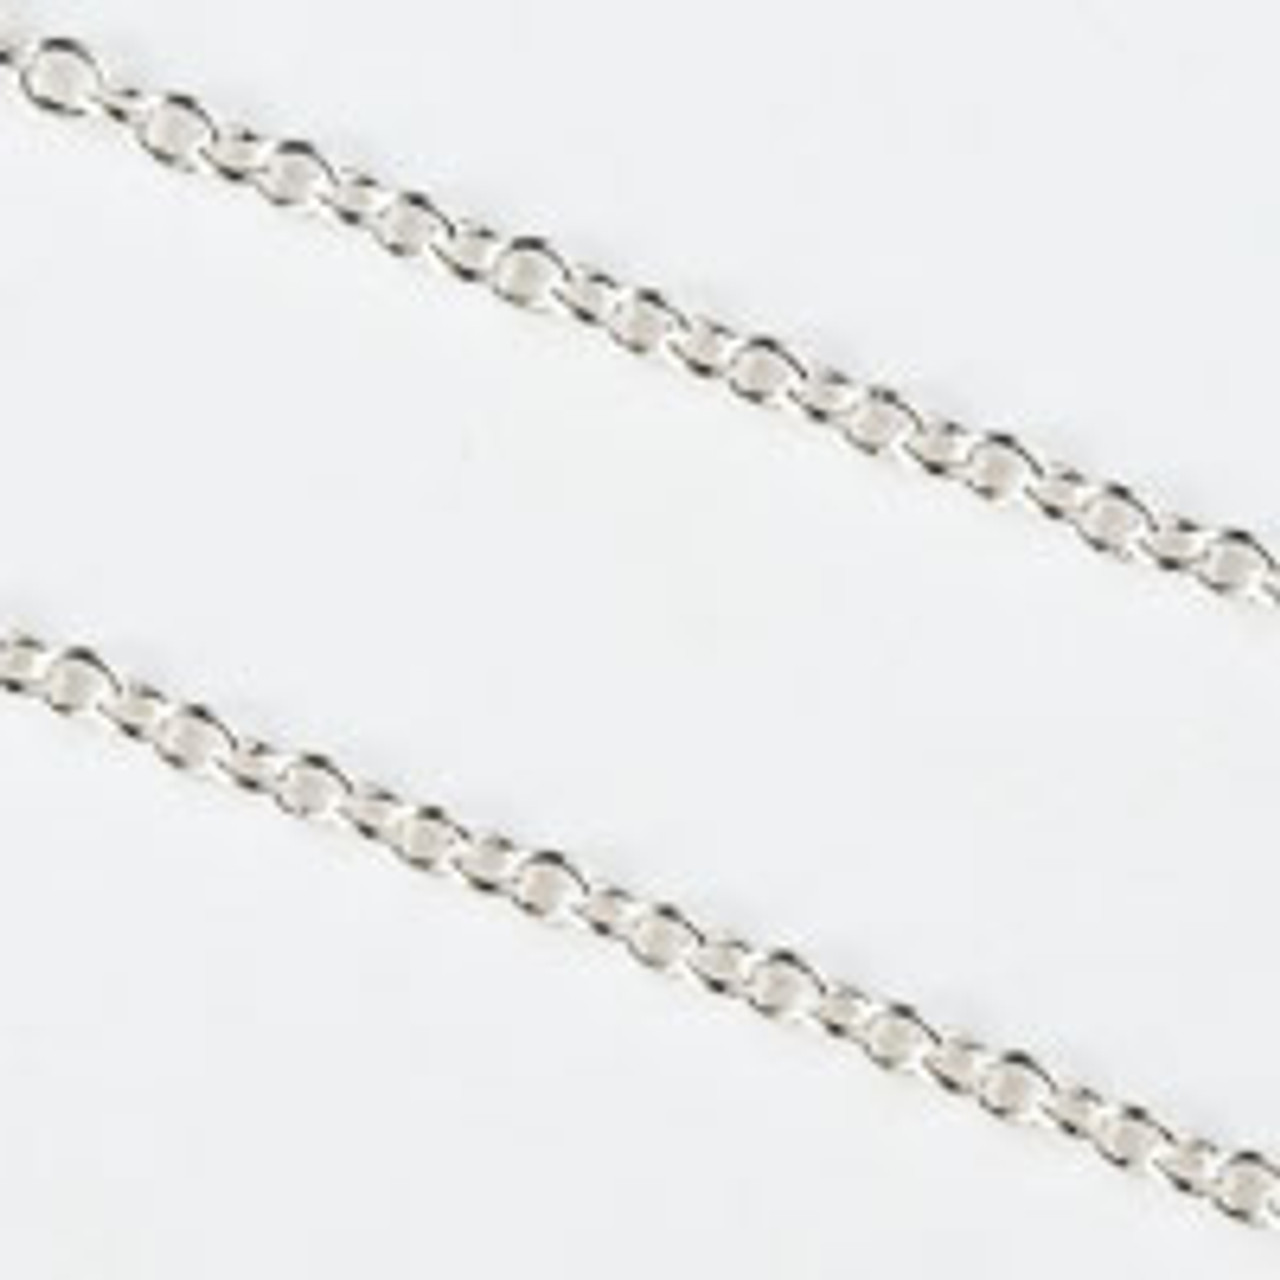 2.2mm Silver Plated Chain - 2 Foot Package